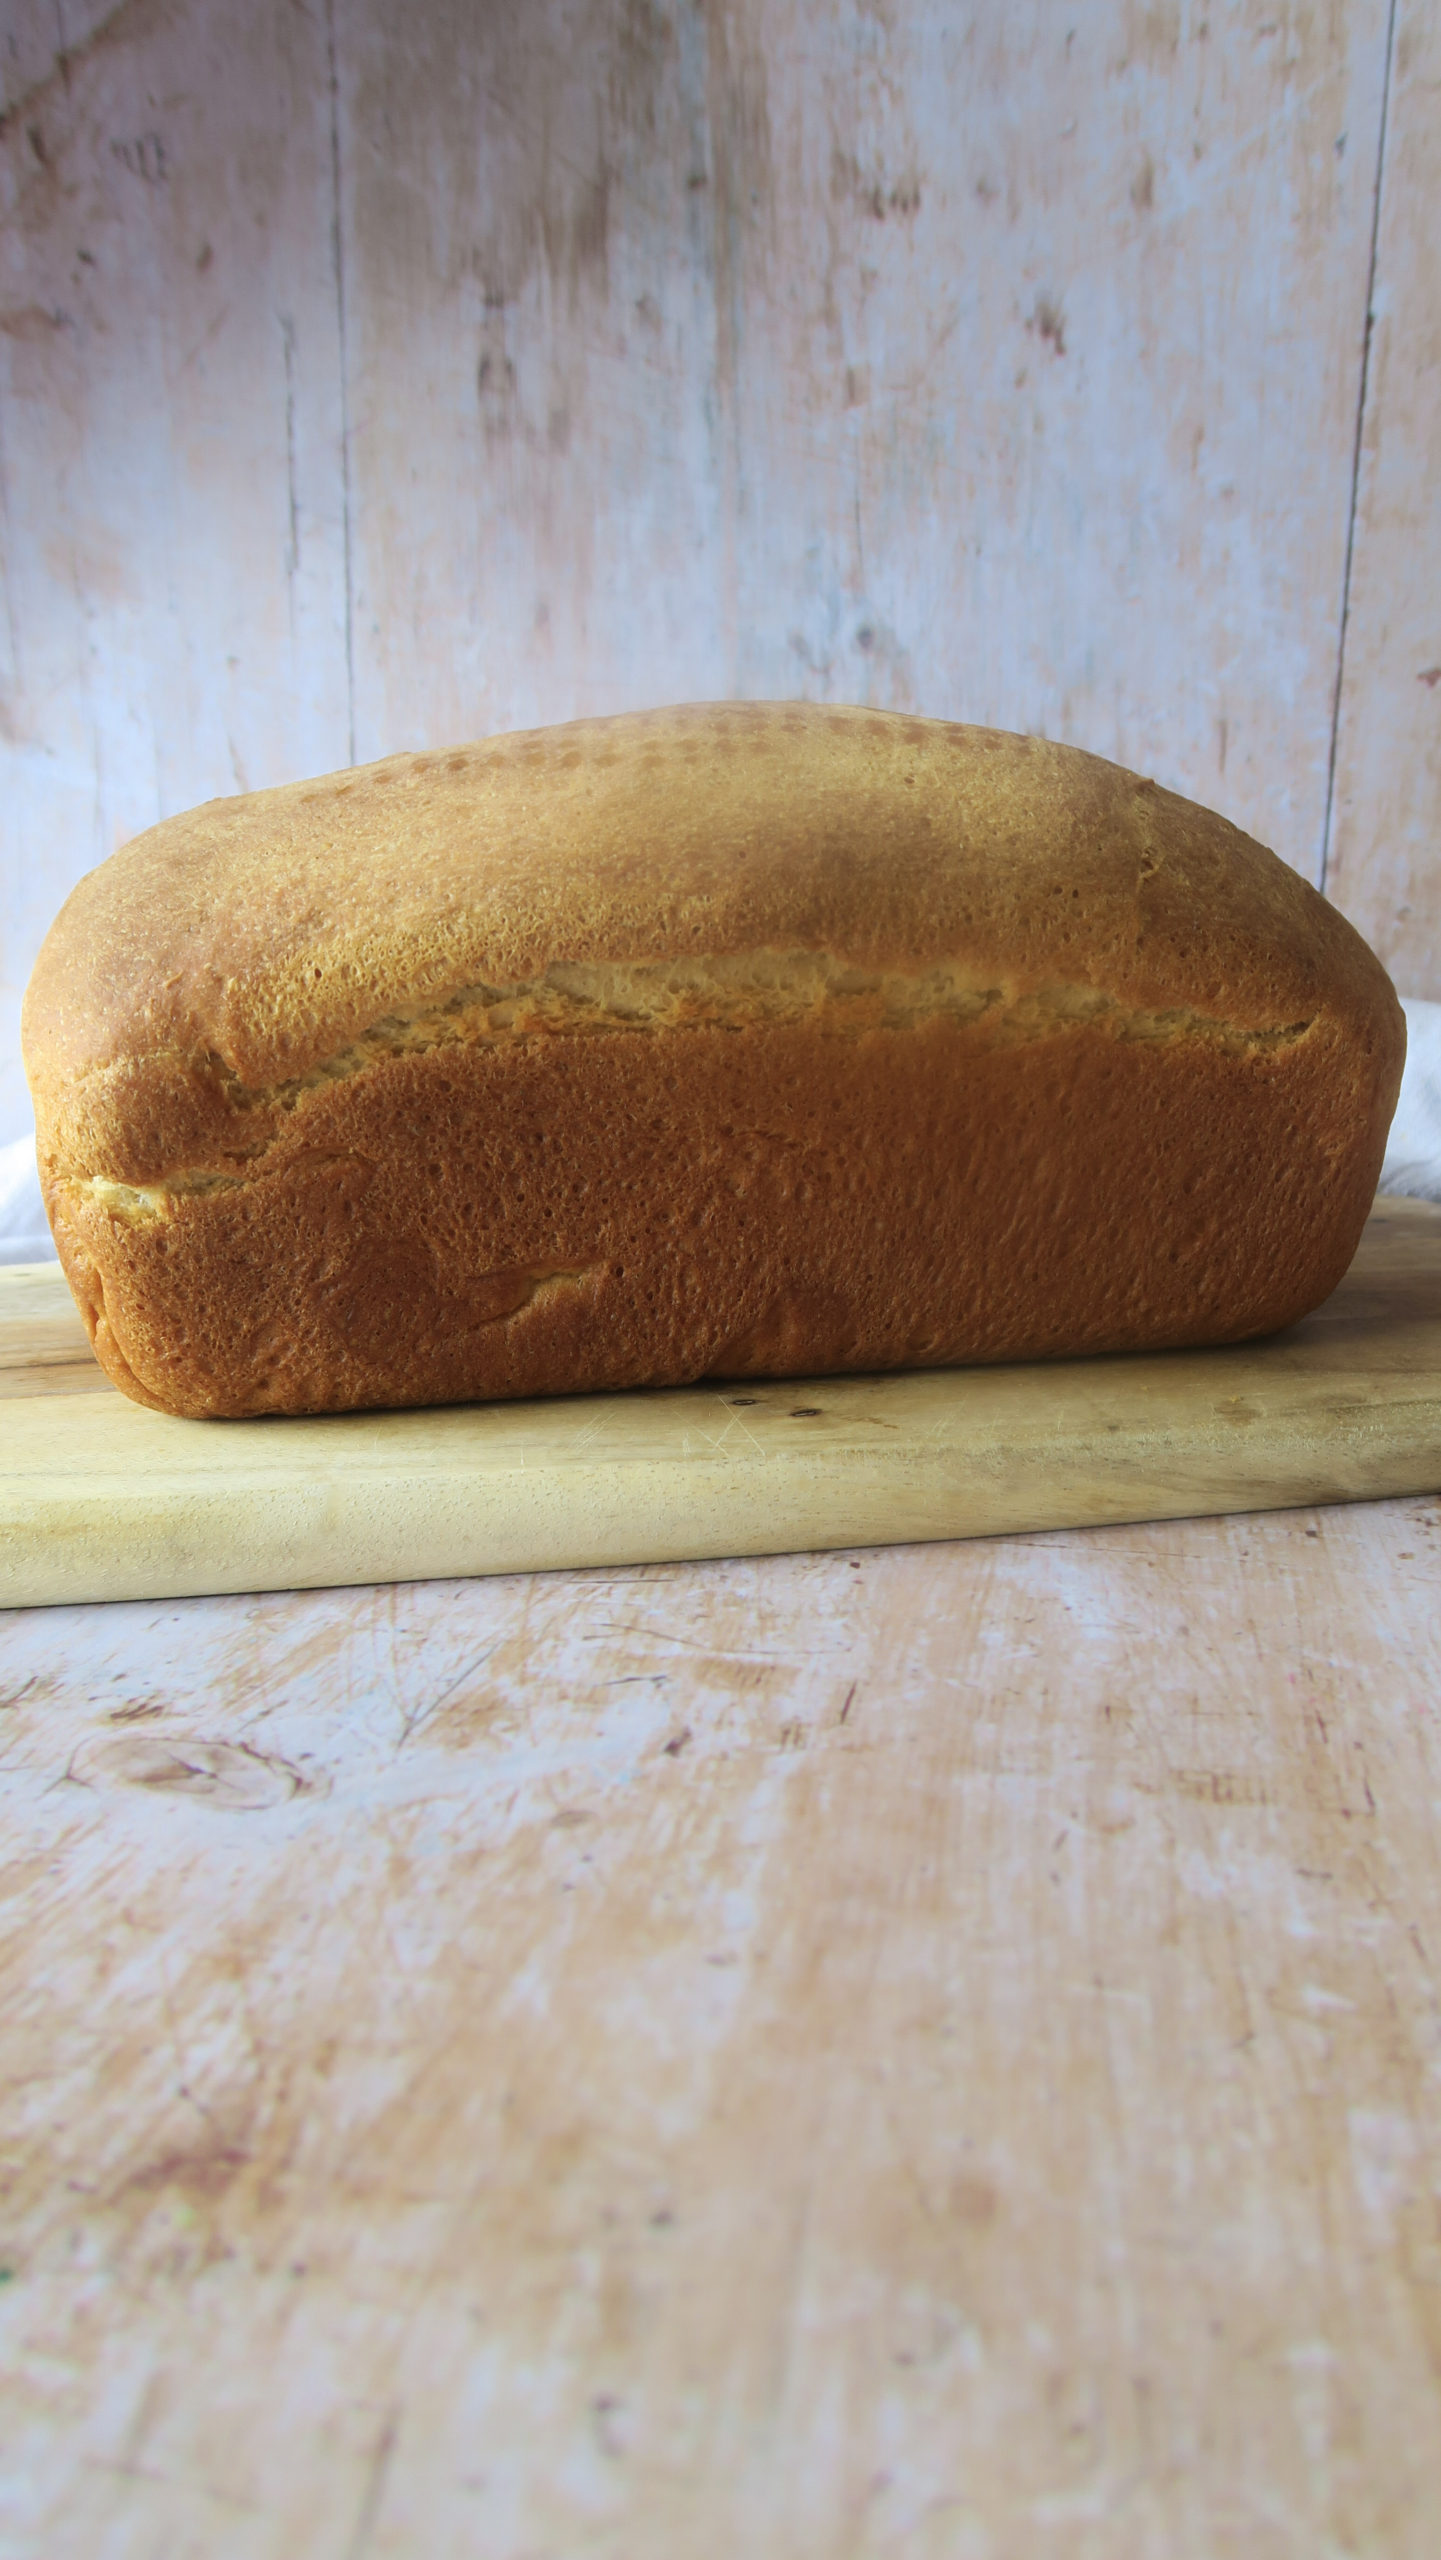 Butter Bread from Antigua and Barbuda